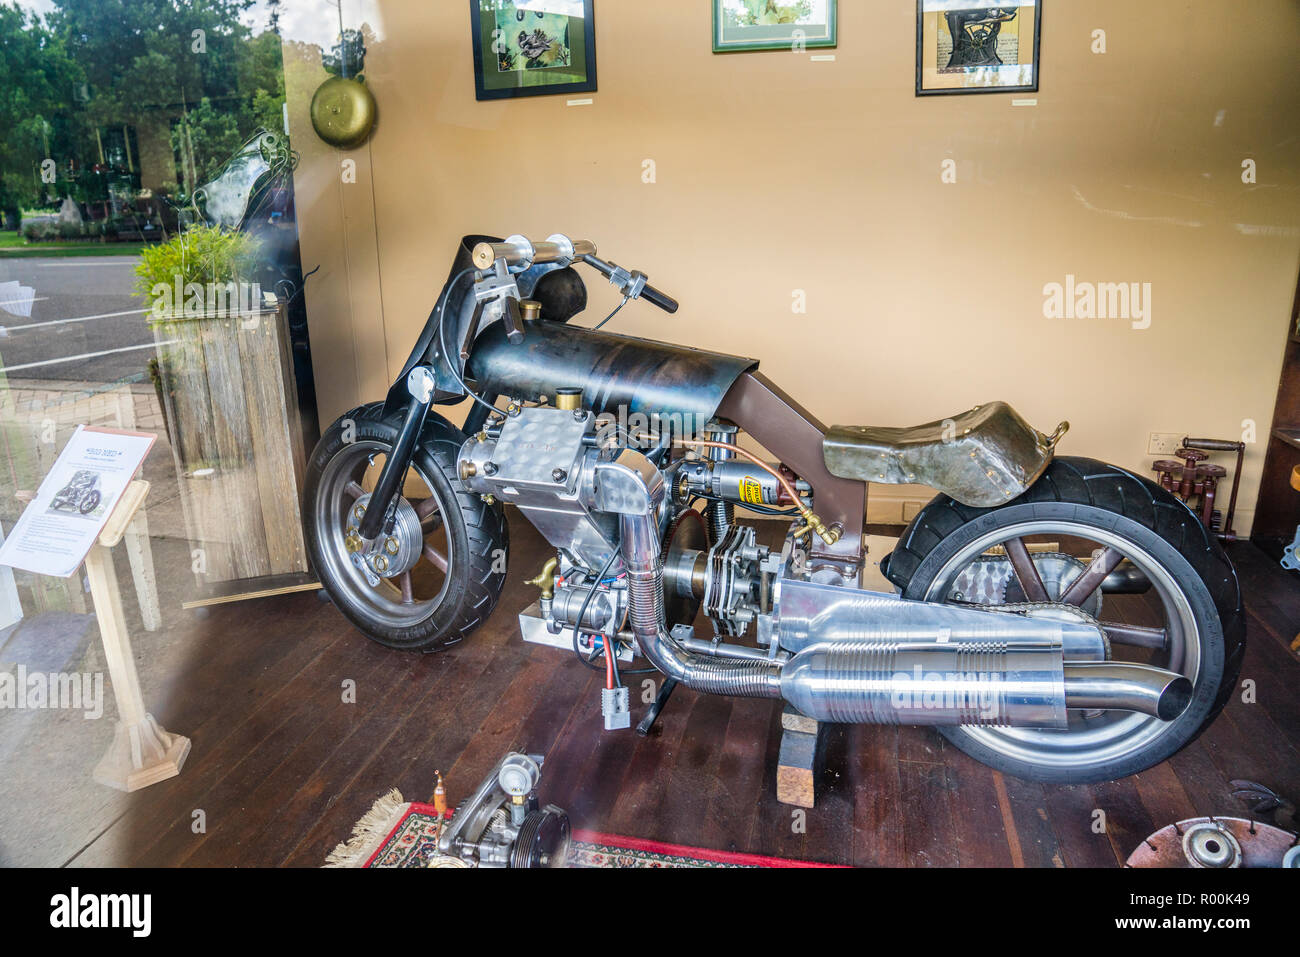 handcrafted motorbike titled 'Big Ned' the ultimate street fighter at the Makers of Metal gallery cafe at the Northern Tablelands country town of Walc - Stock Image